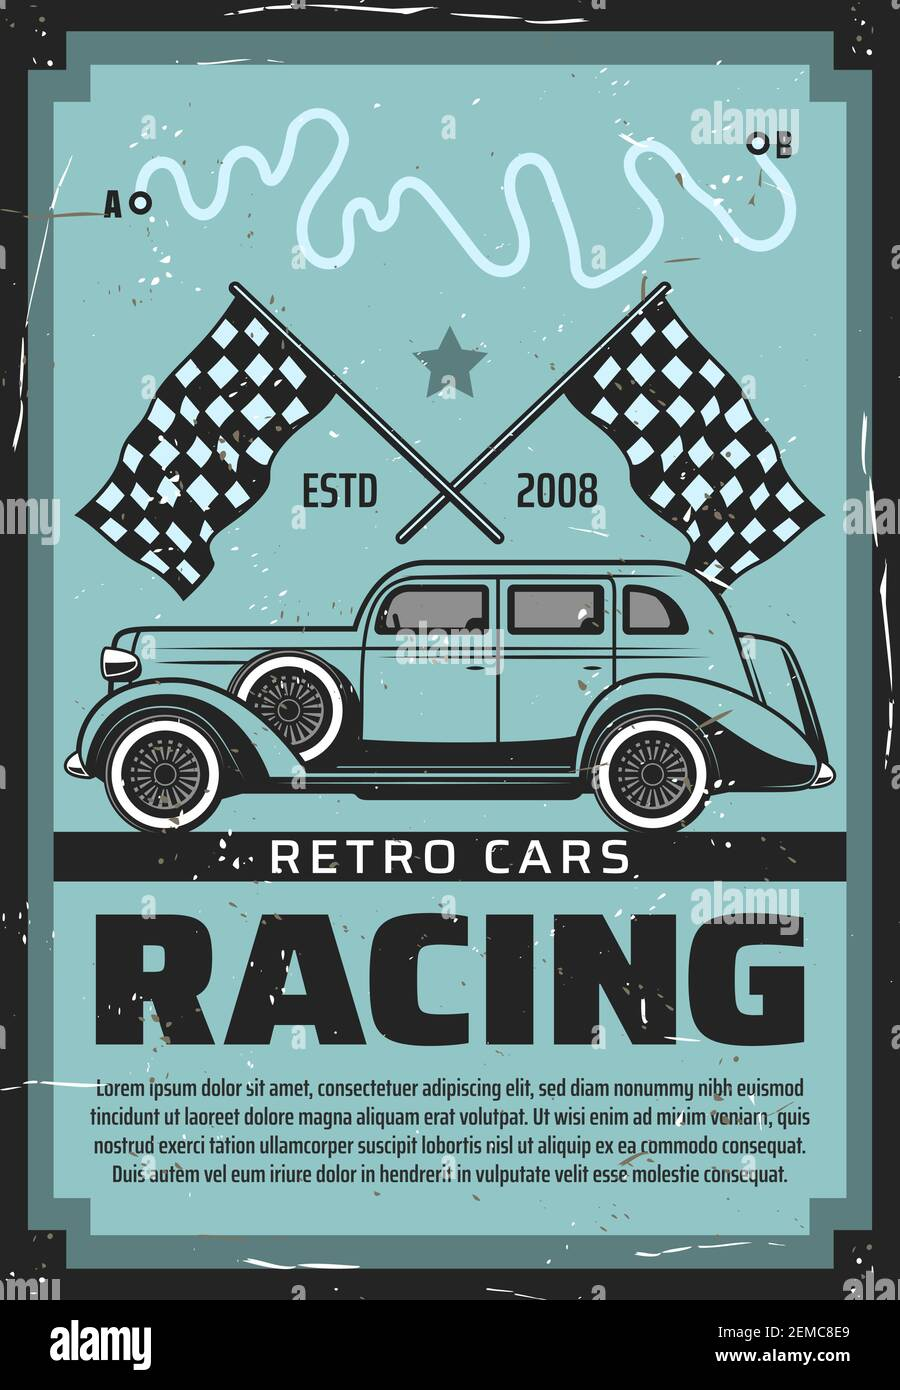 Vintage Motor Racing Poster High Resolution Stock Photography And Images Alamy